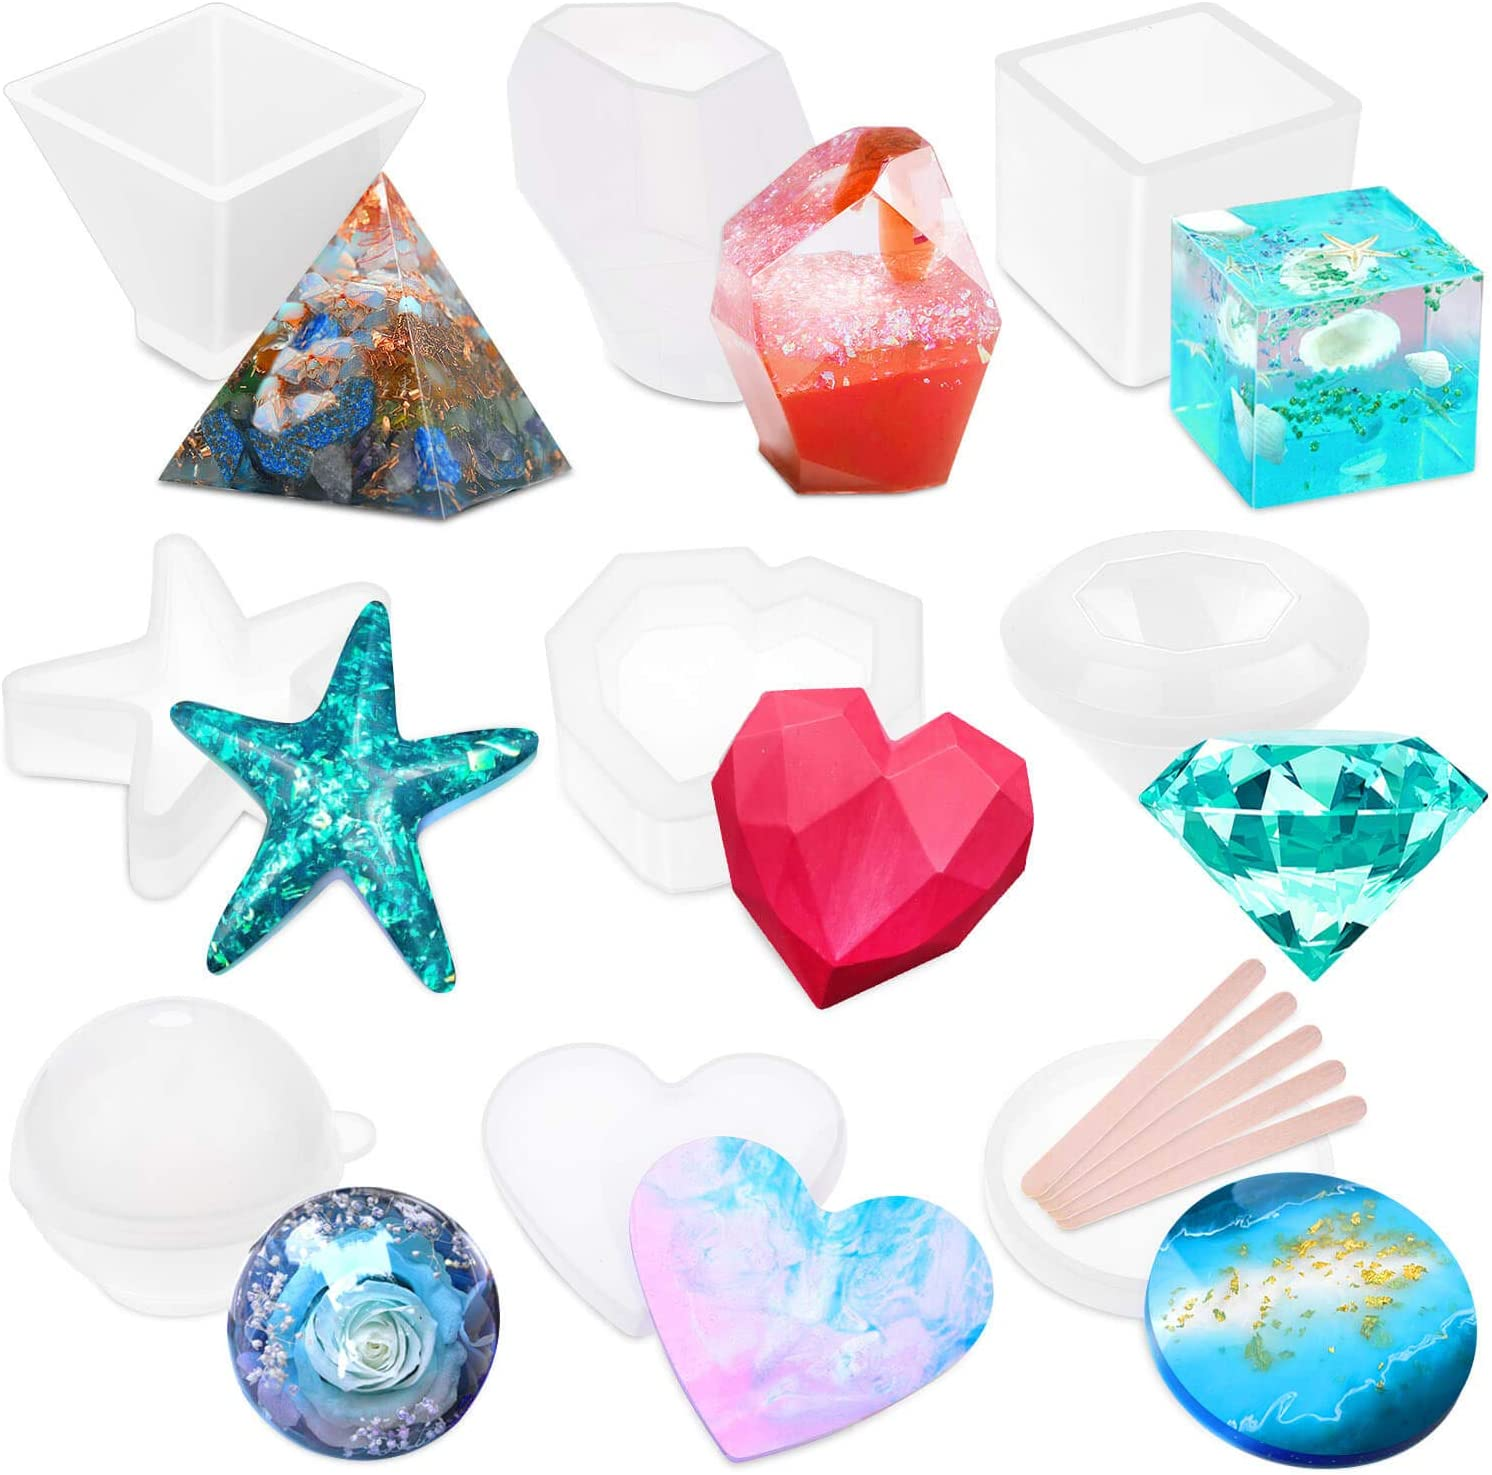 Food Grade Silicon Mould Solid Silicone Mold Shiny Silicone Mold Resin Crafting Mold Ocean Sail Silicone Mold Resin Craft